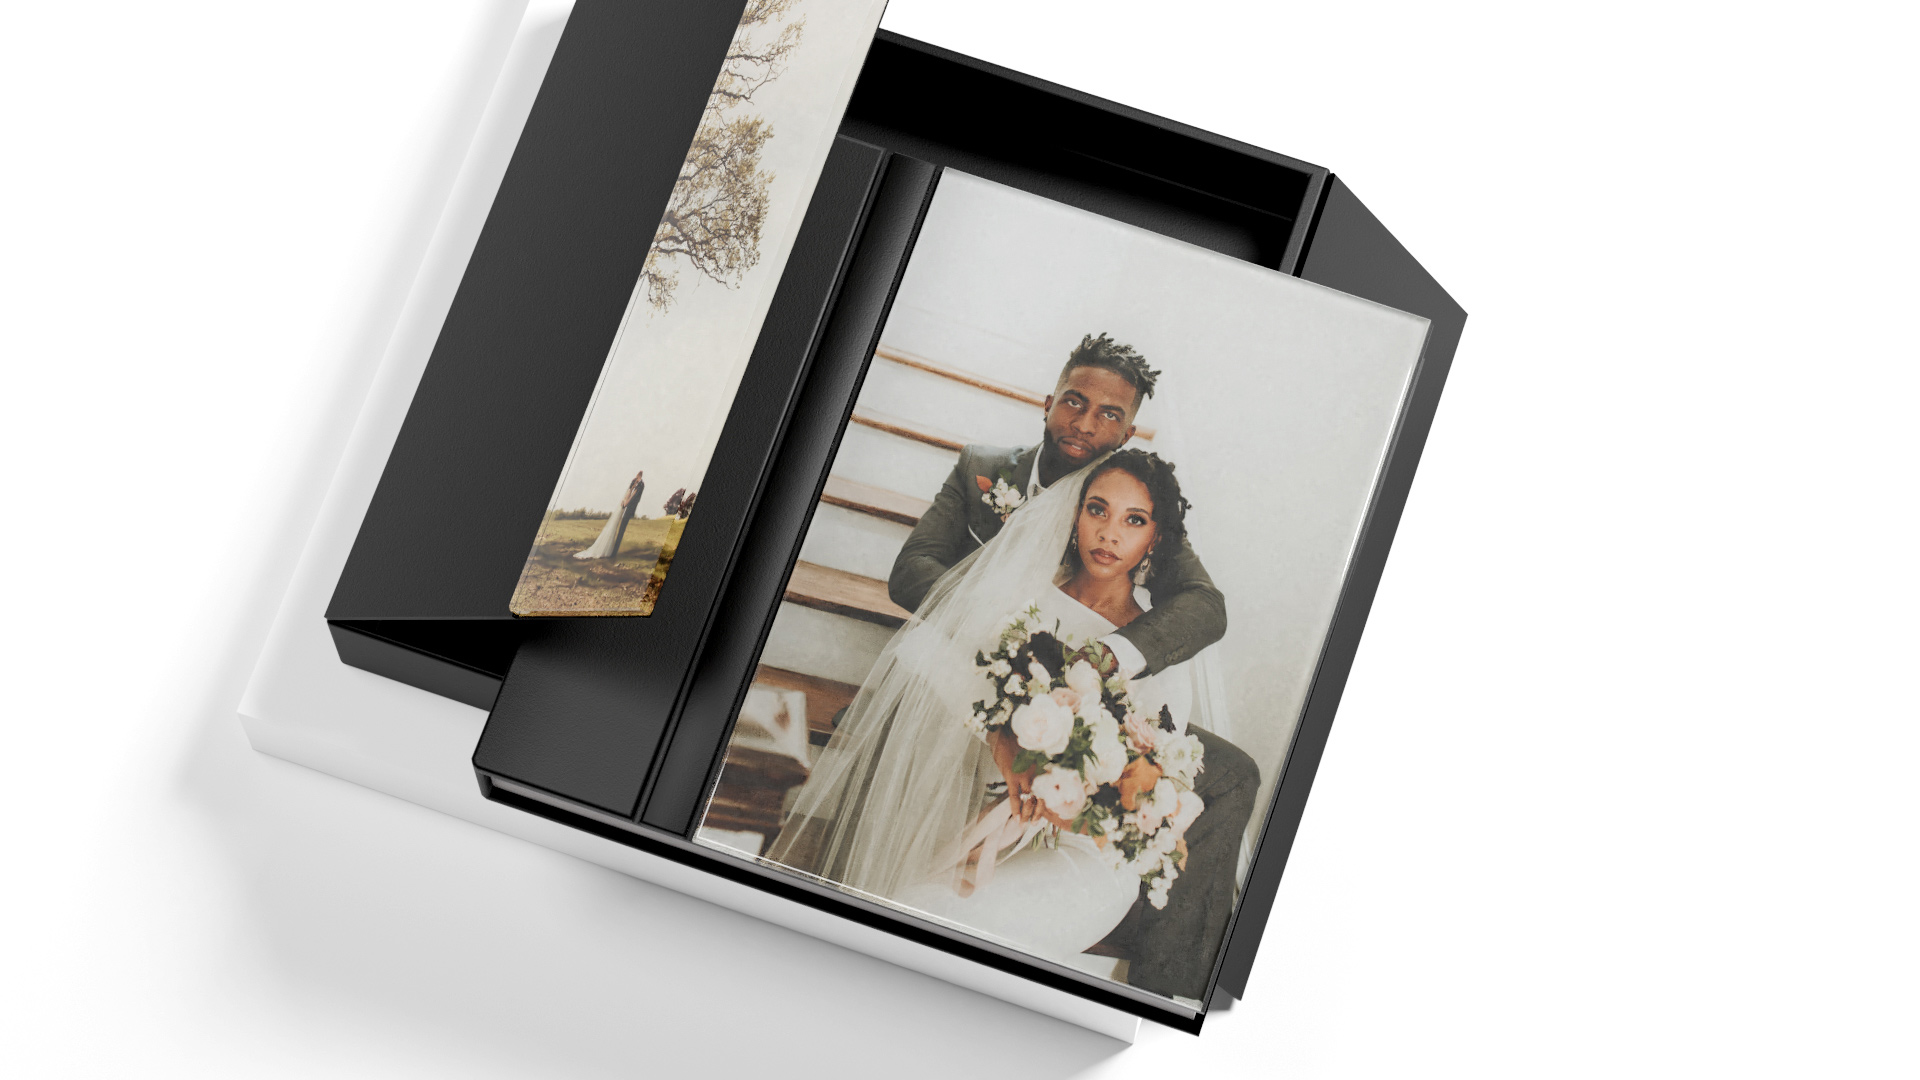 5 Fool Proof Ways to Make Your Clients Want a Printed Album